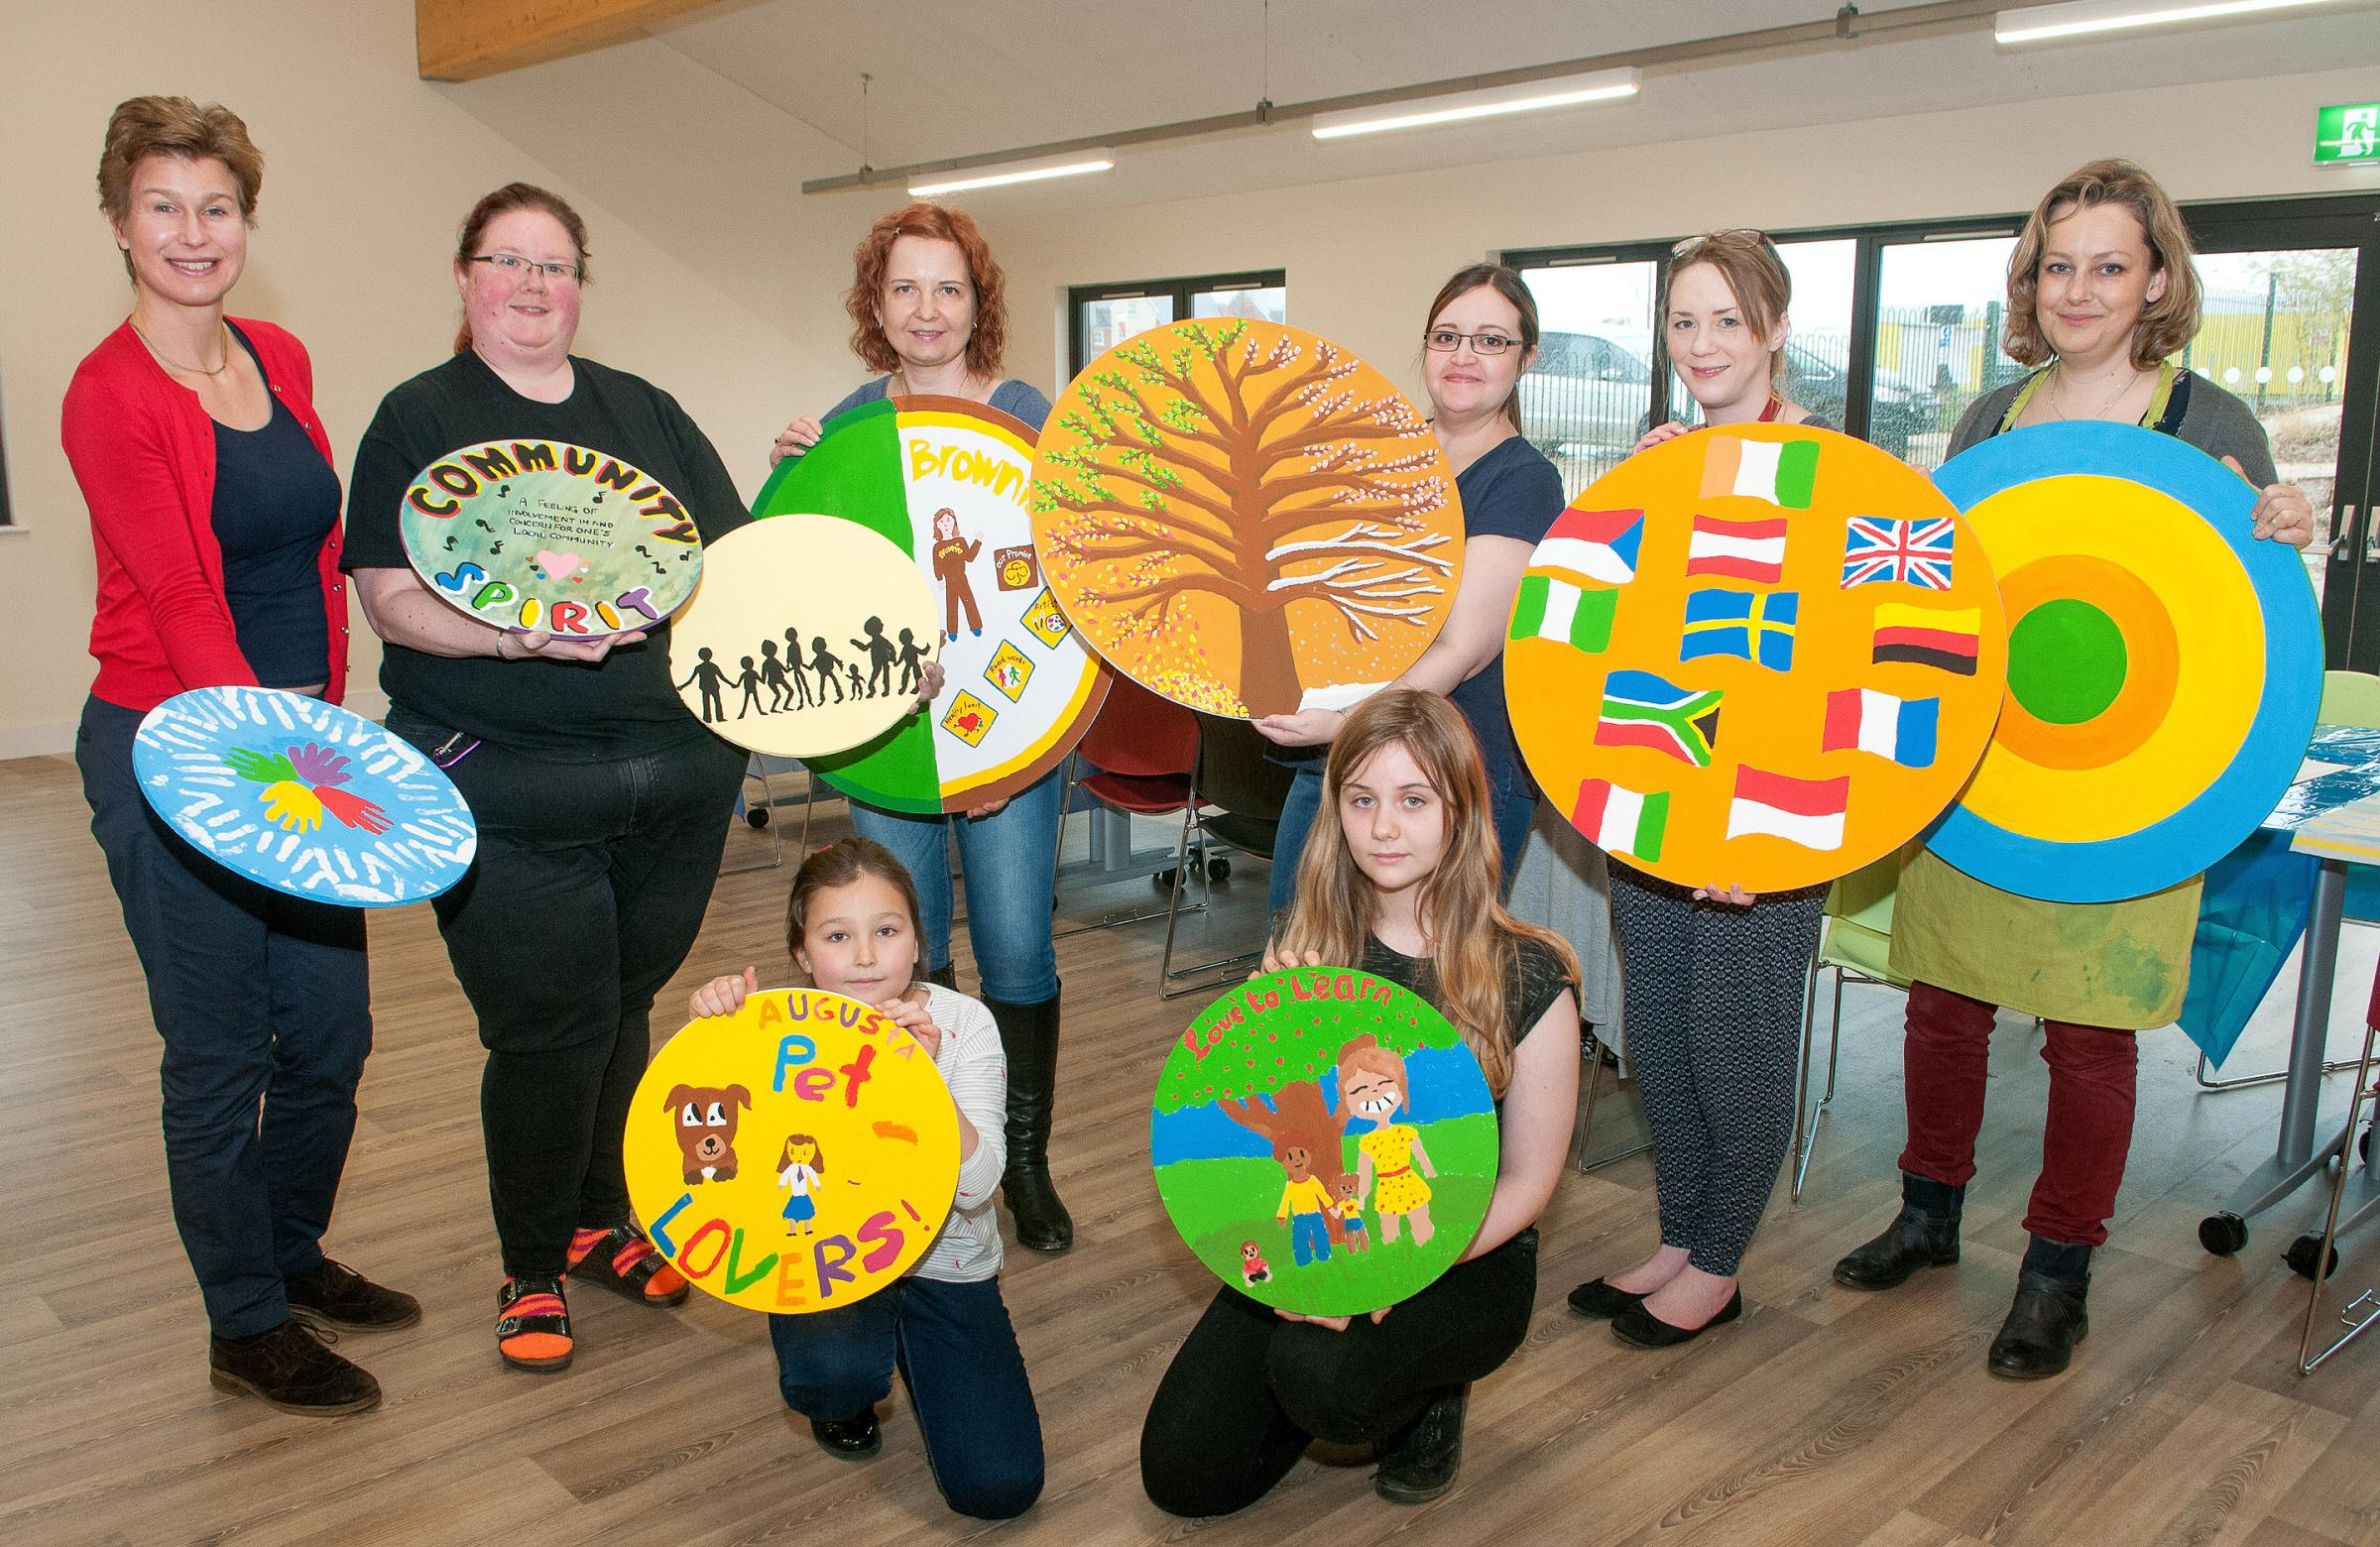 Sally Arscott of Andover YMCA (back left) with with volunteers and their disc designs being painted to make the building a brighter place. Image, Andy Brooks